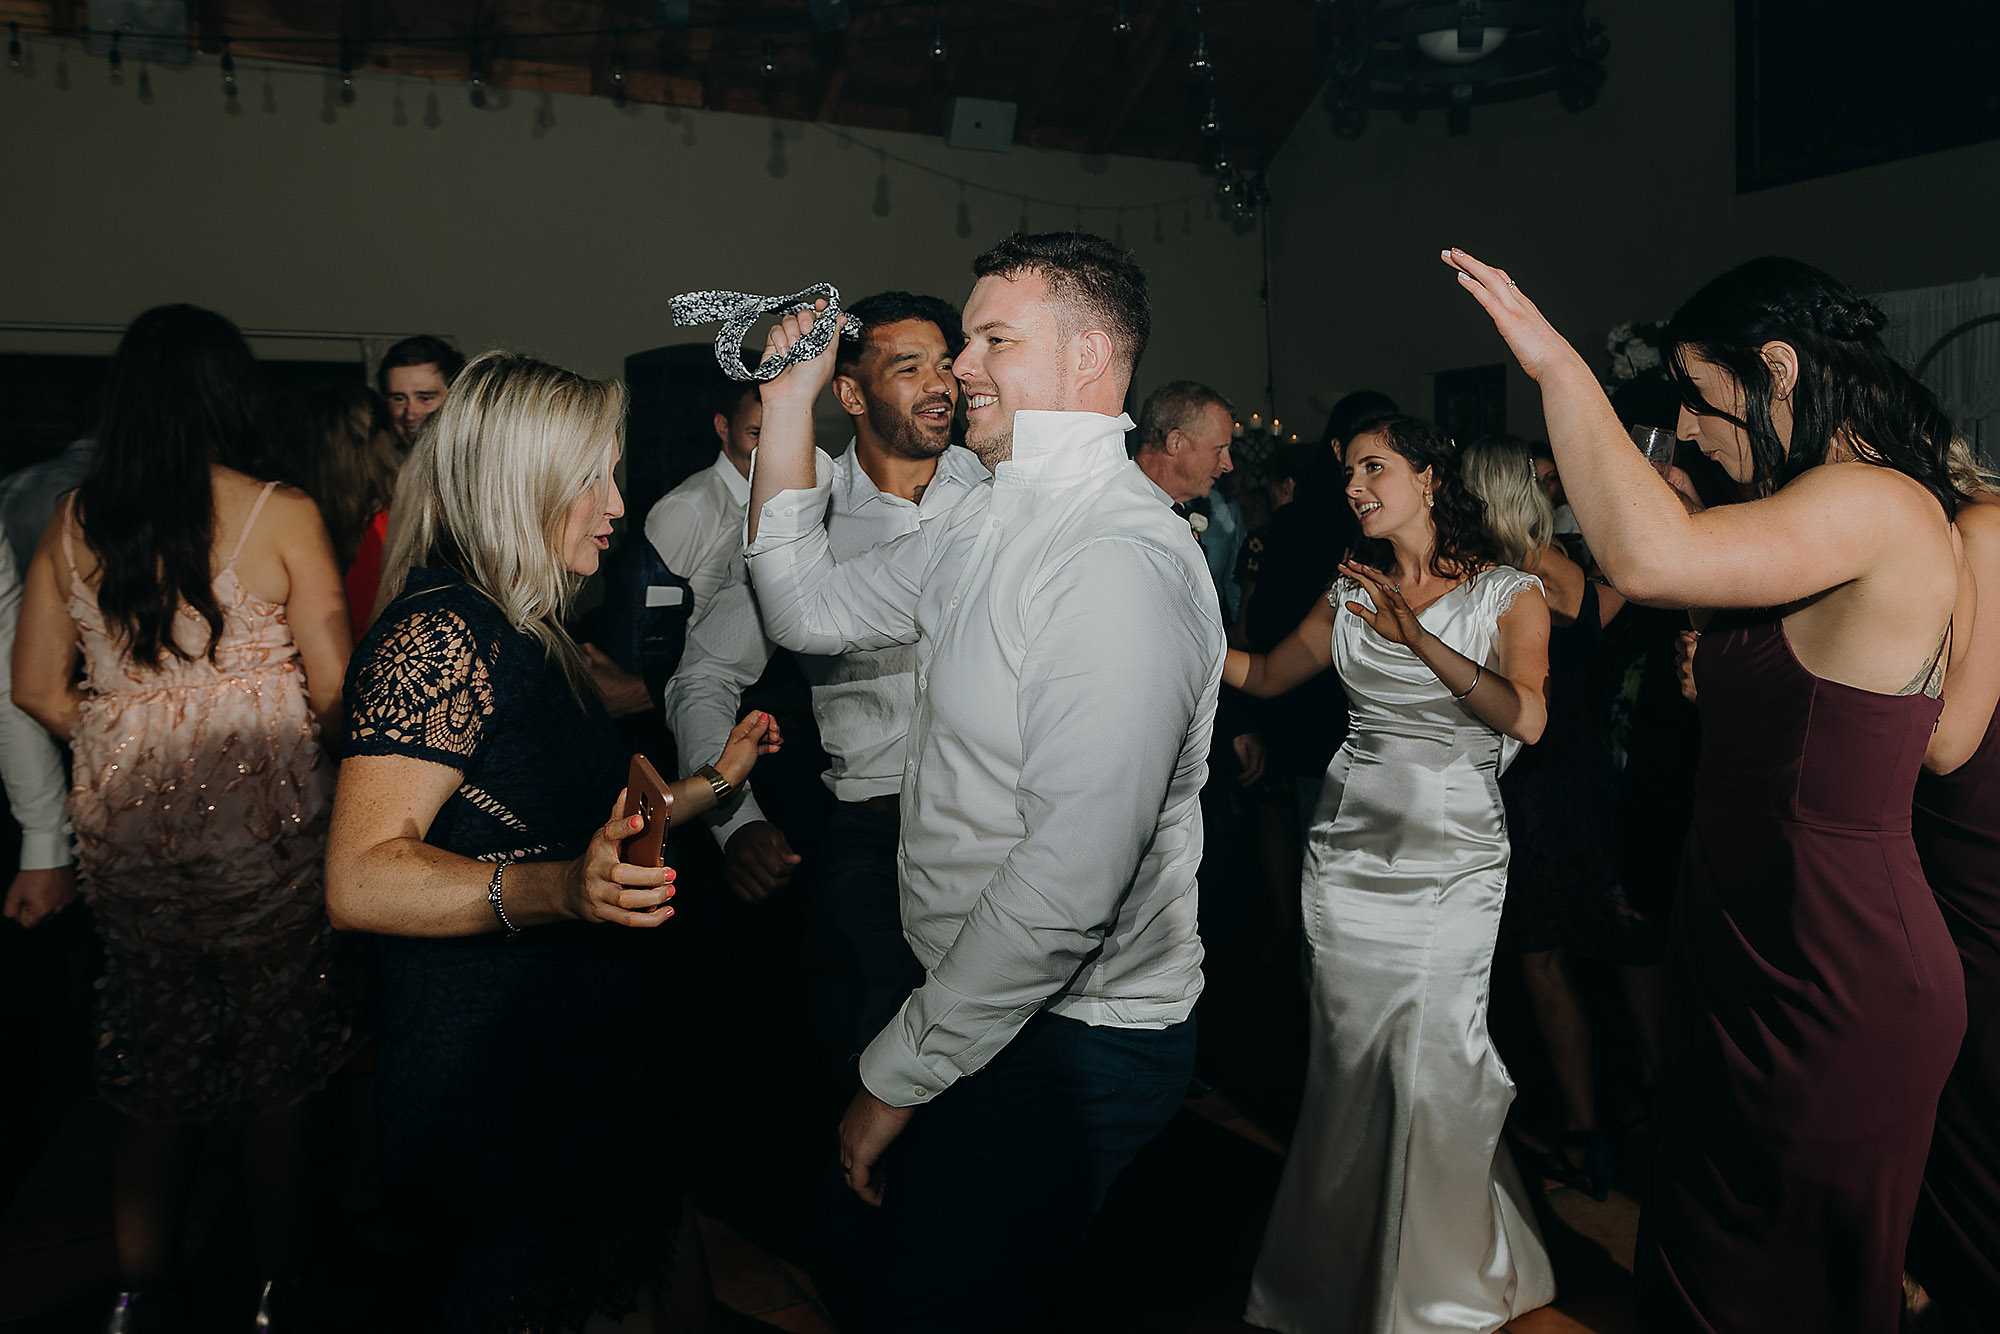 Christchurch Wedding Photographer wedding dance floor fun reception photo Cossars Wineshed Christchurch Rebecca Claridge Photography